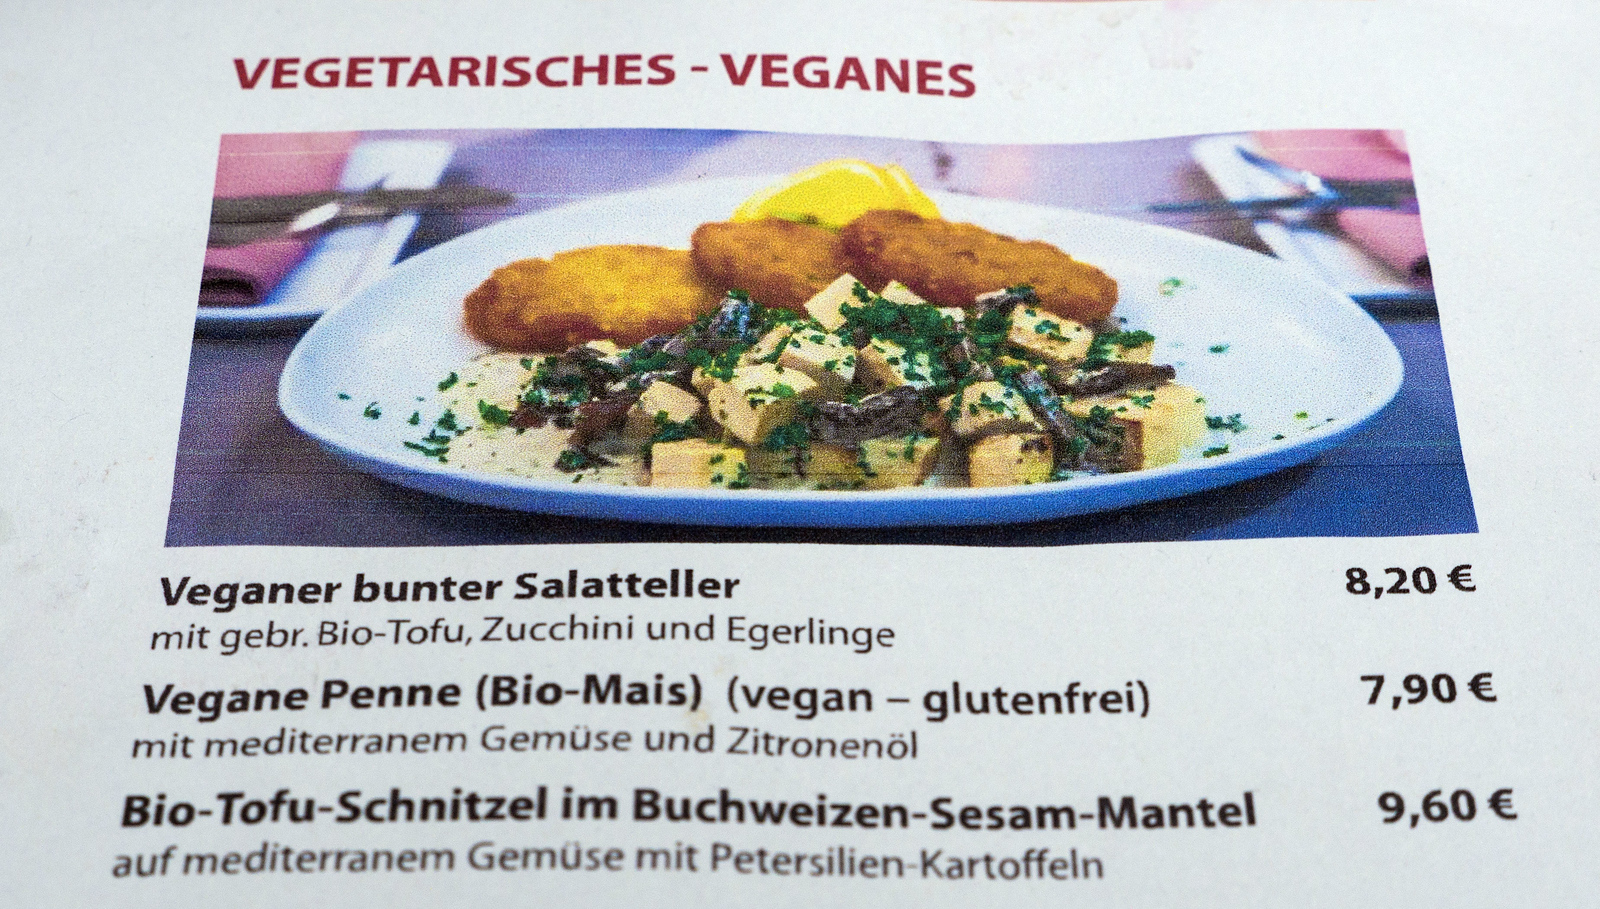 Bamberg Vegan Restaurant and Travel Guide - Bamberg Germany